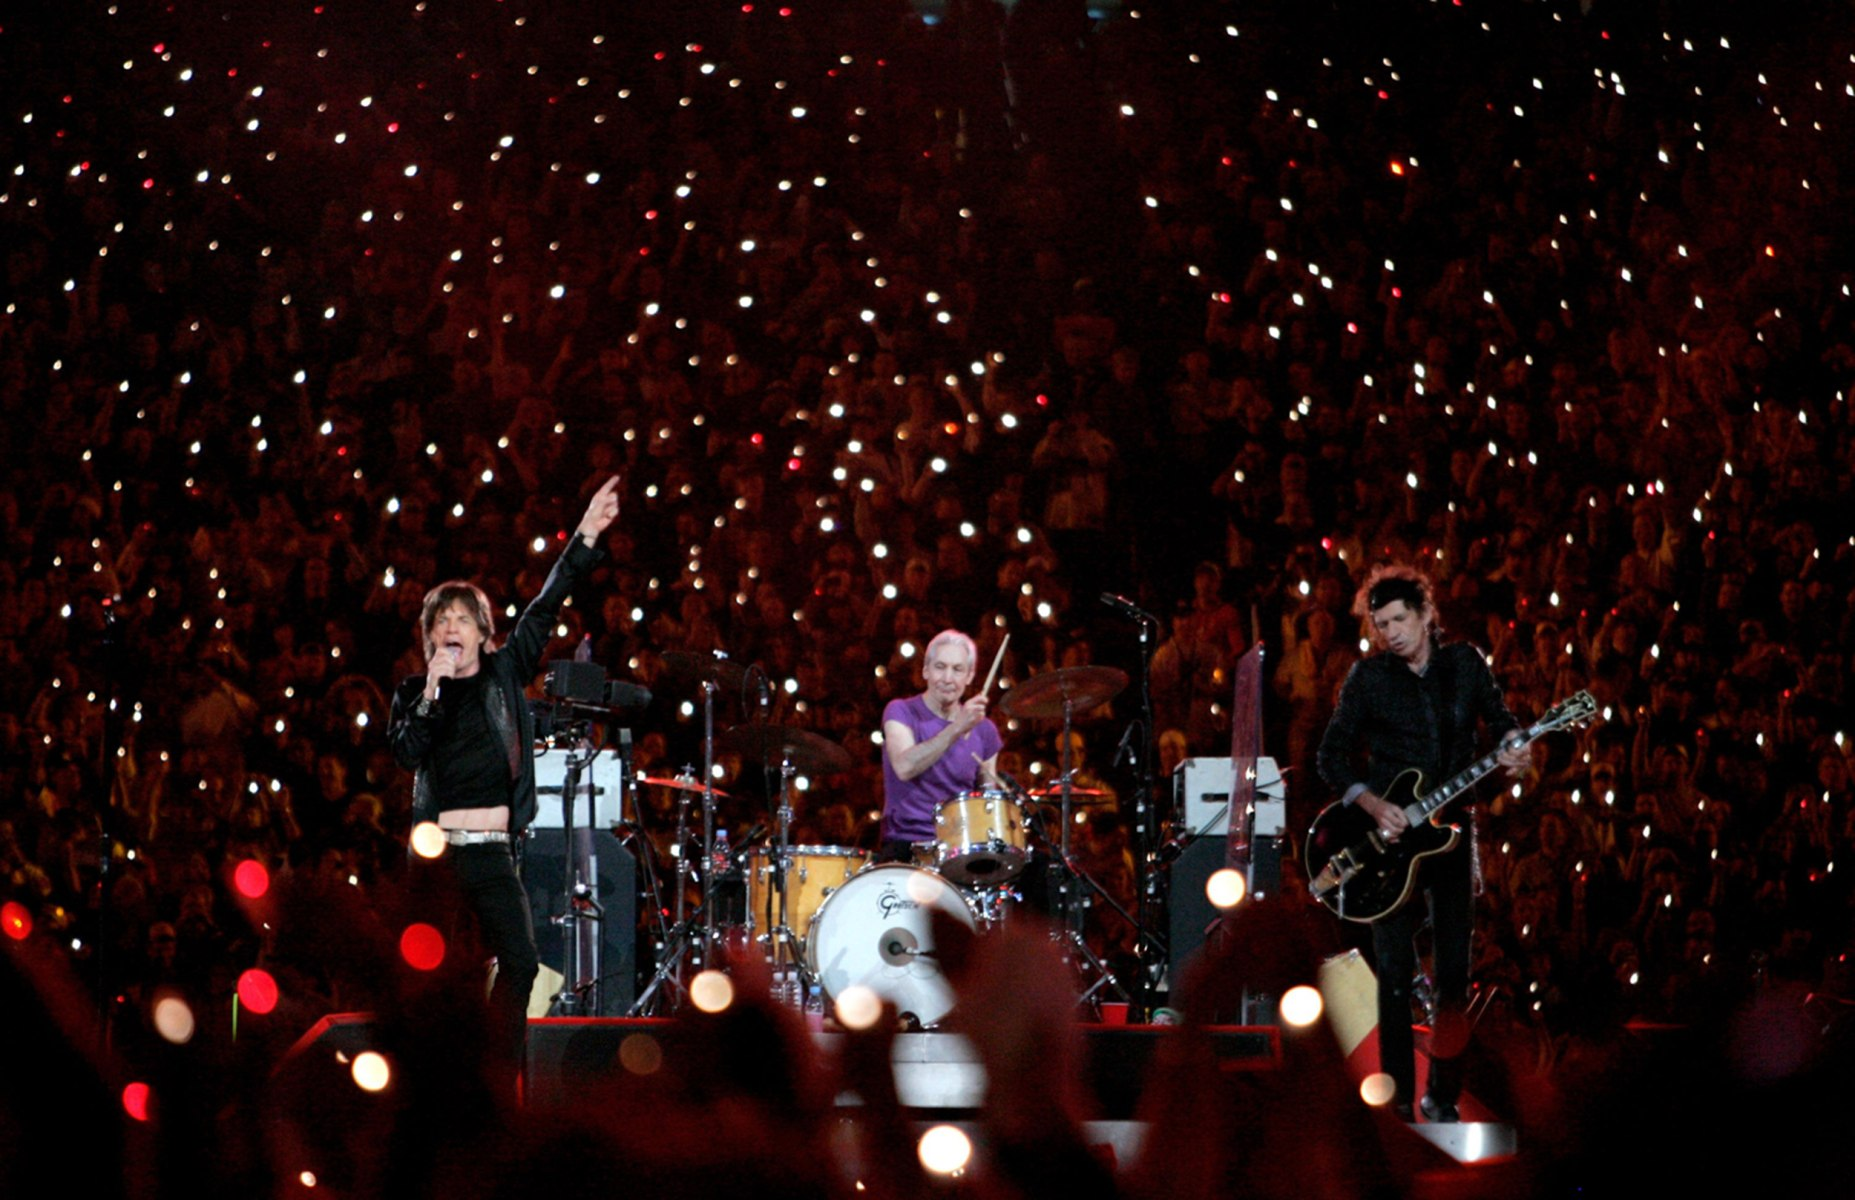 From Bruno Mars to Left Shark: 10 most unforgettable Super Bowl halftime shows